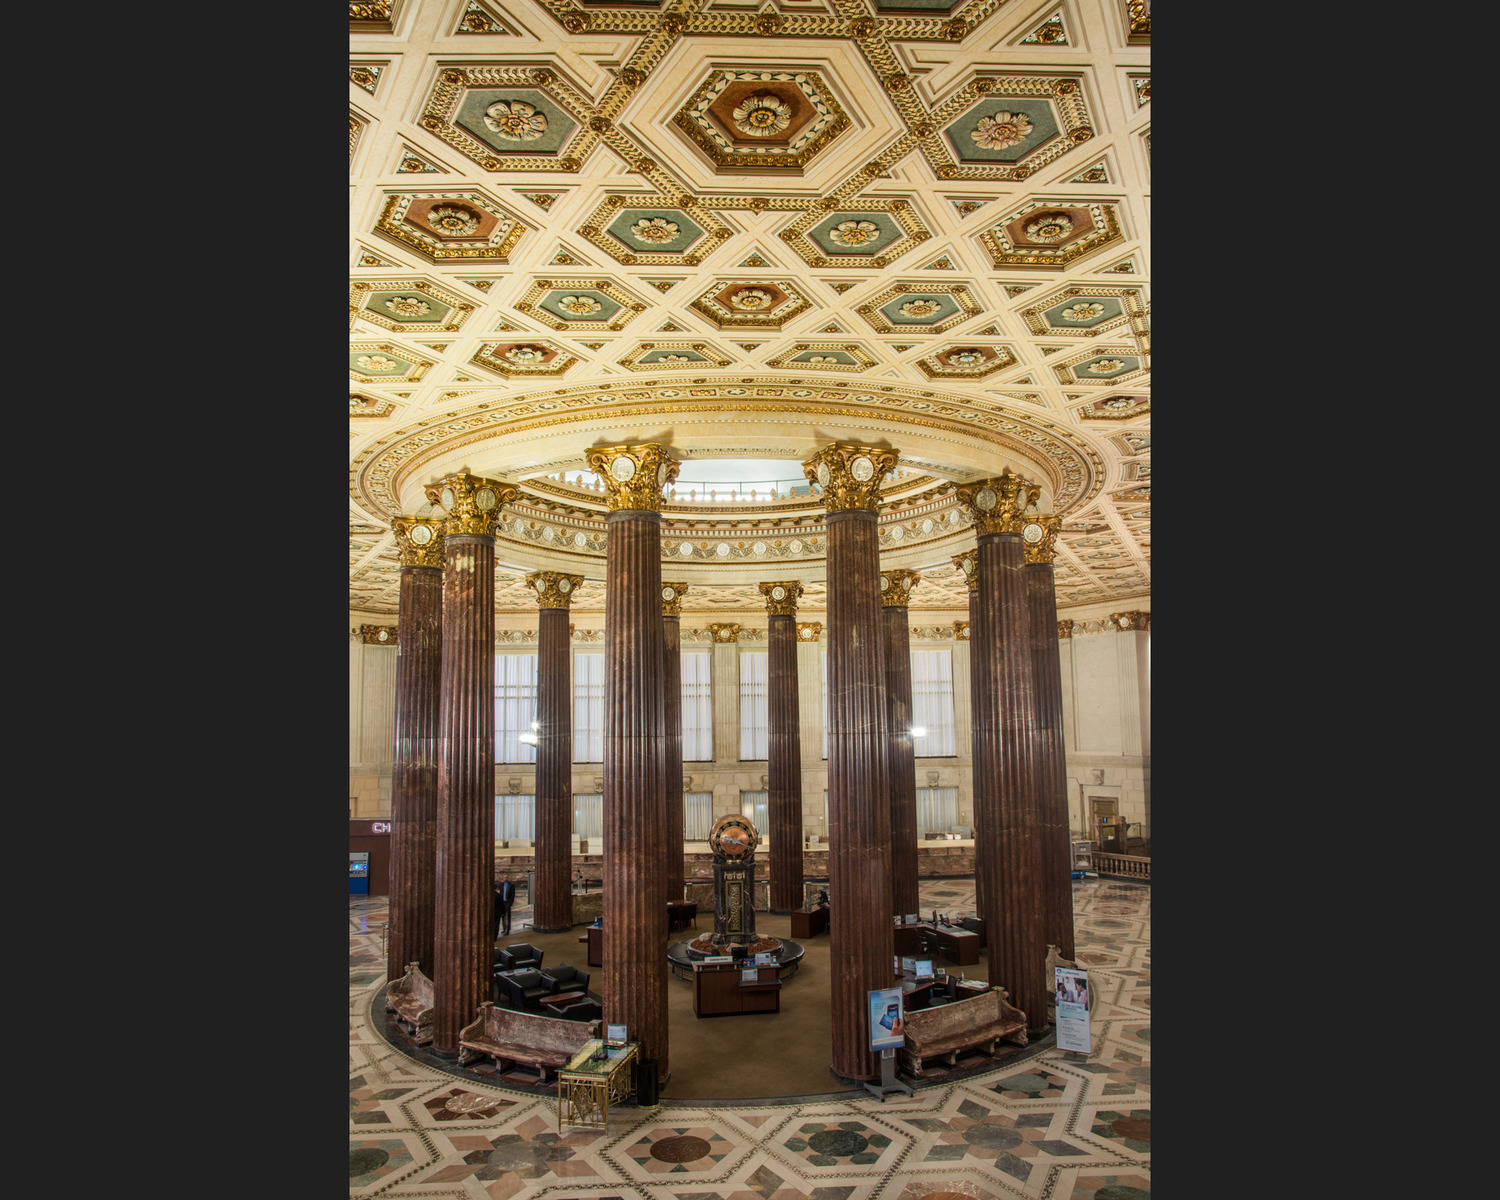 This striking 1908 interior (revised in 1918 and again in 1932) was used as a bank for over 100 years. While the design was supposed to convey stability and trustworthiness, more than anything it looks like a Liberace-inspired fever dream. In May 2015, the building was sold. Its next purpose remains to be seen.